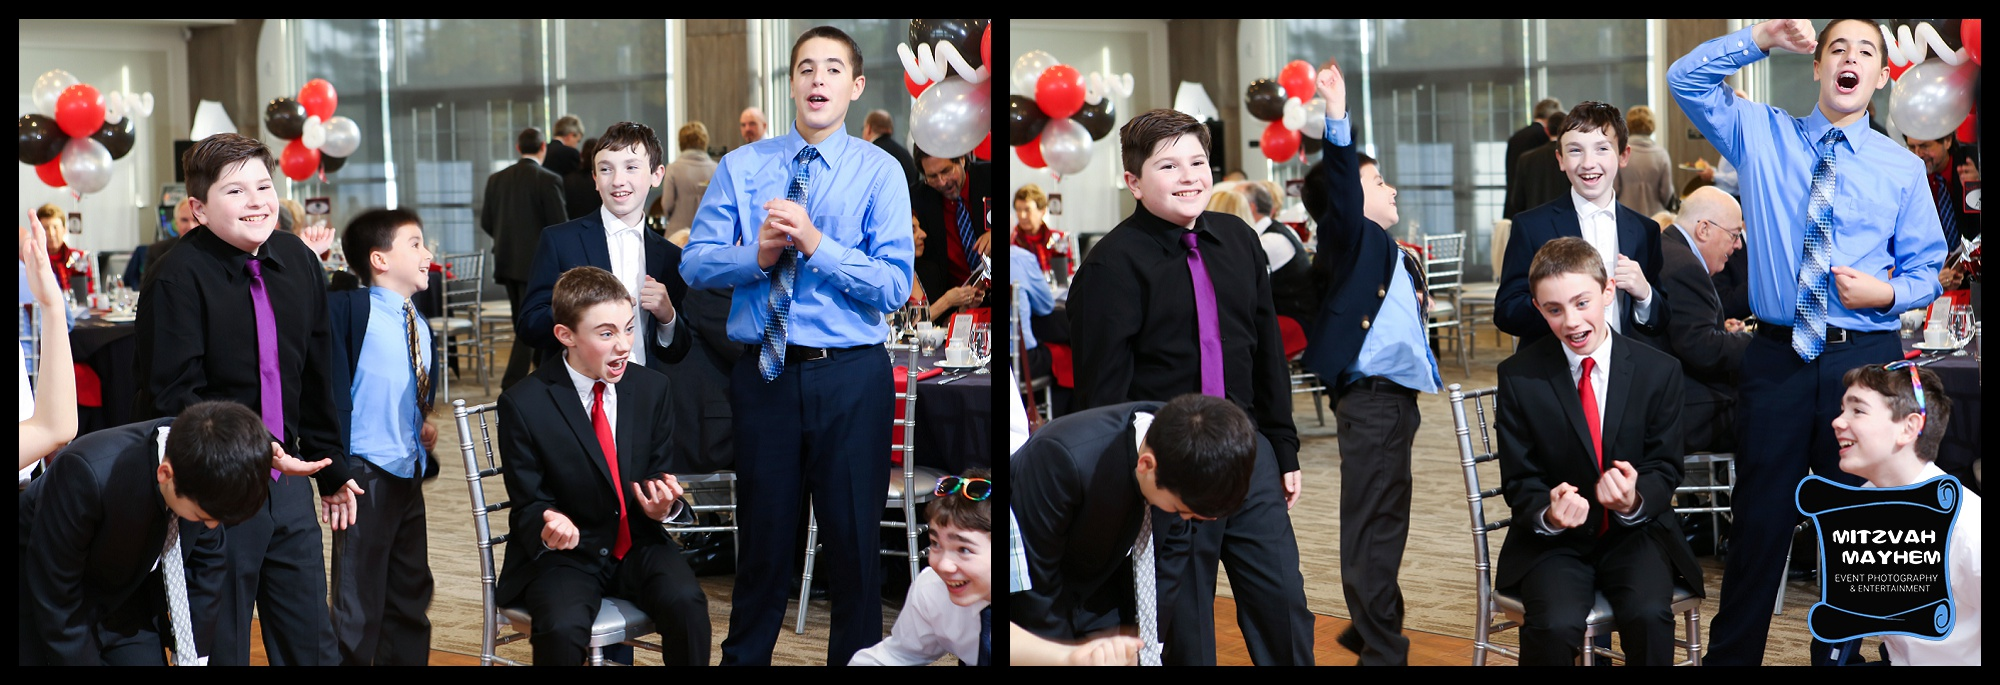 mercer-boathouse-mitzvah-nj-0375.jpg